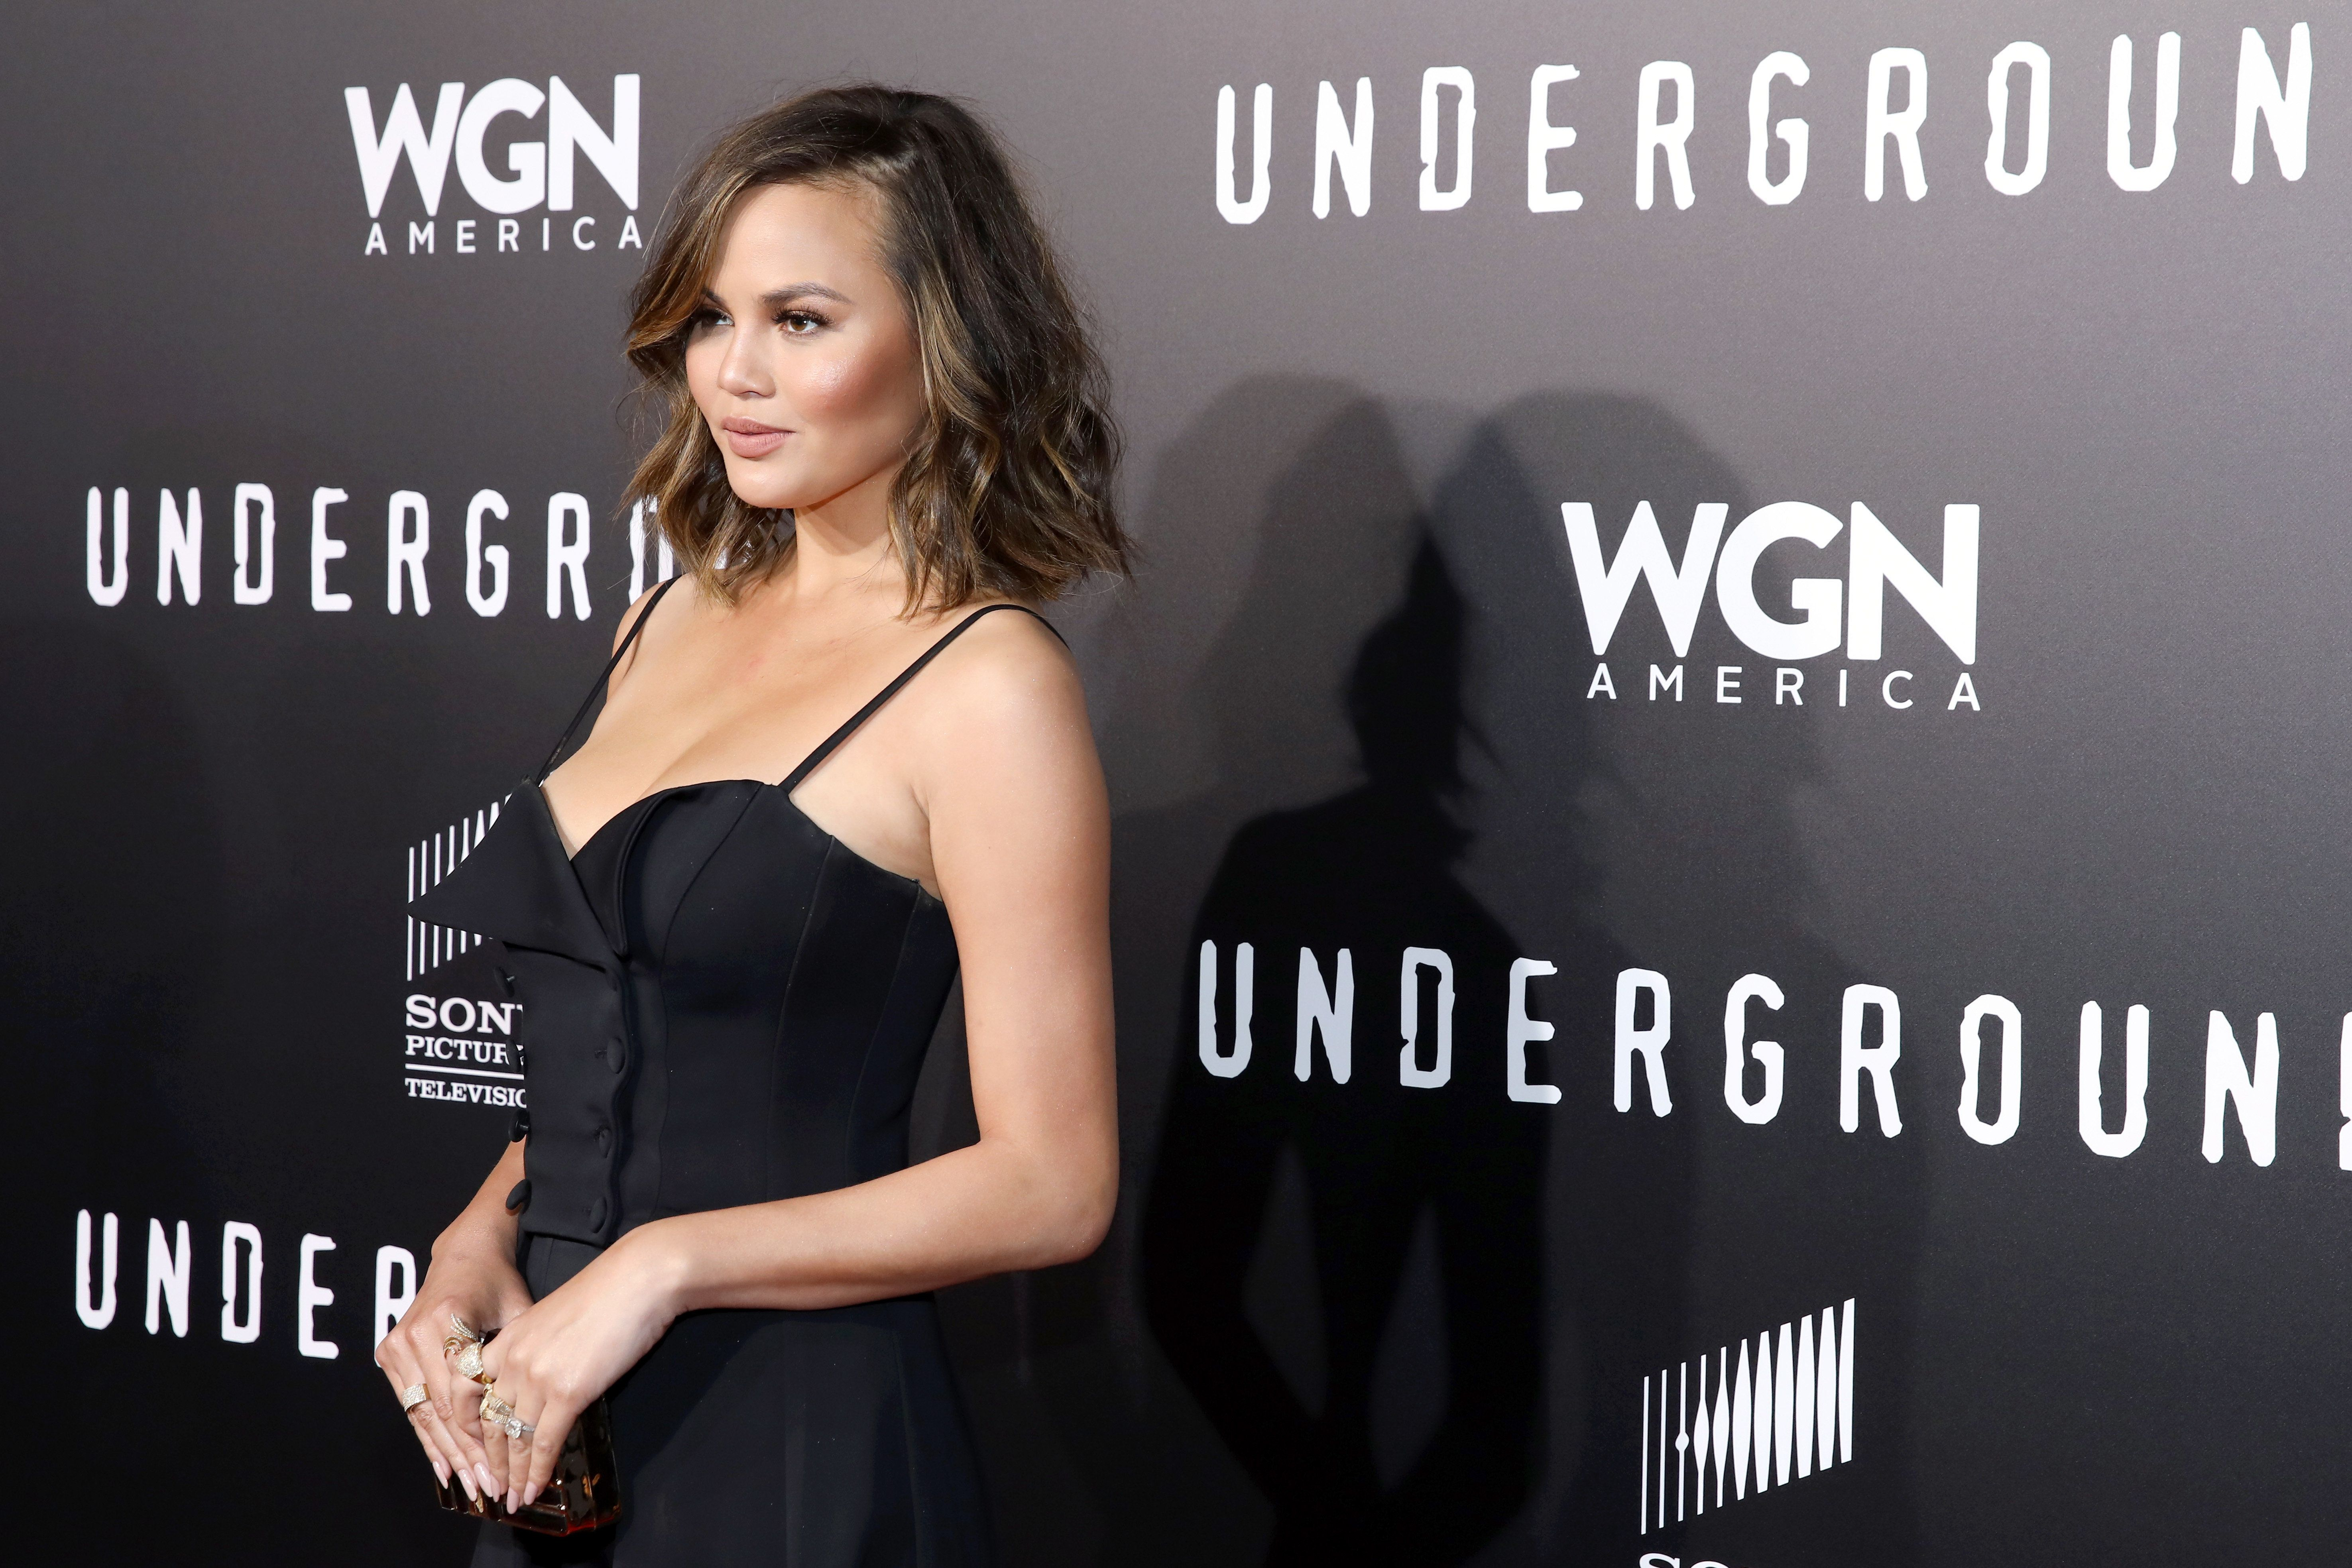 WESTWOOD, CA - FEBRUARY 28:  Model Chrissy Teigen attends WGN America's 'Underground' Season Two Premiere Screening at Regency Village Theatre on March 1, 2017 in Westwood, California.  (Photo by Rachel Murray/Getty Images for WGN America)